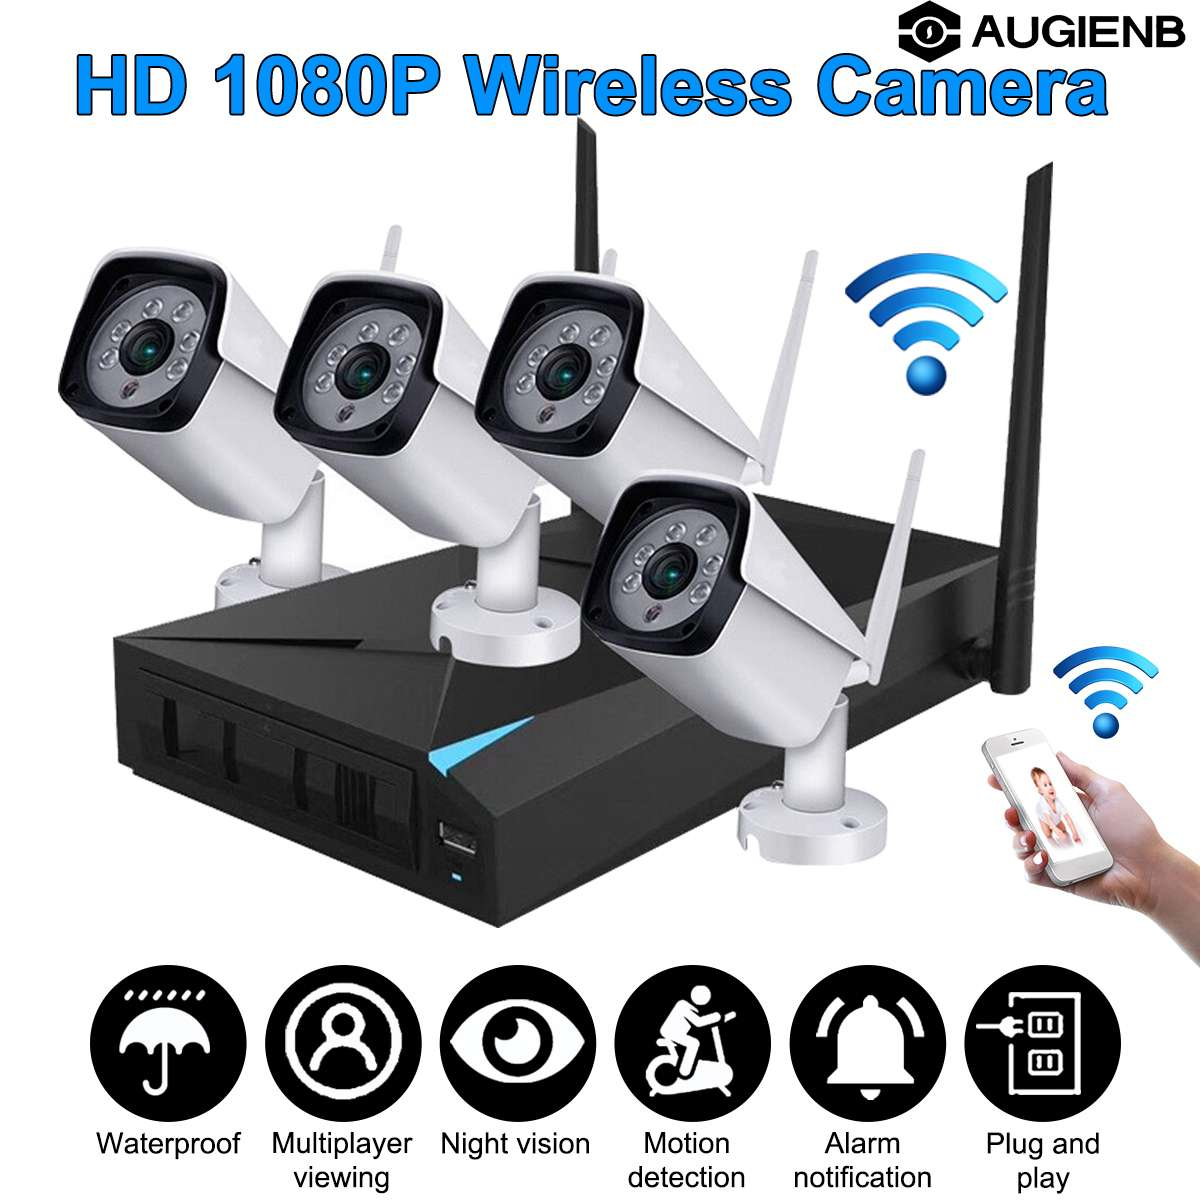 1080P Wireless Security Camera System, 4CH NVR WiFi IP Cameras, CCTV Video Surveillance System Kit Plug & Play, Motion Detection-in Surveillance System from Security & Protection    1